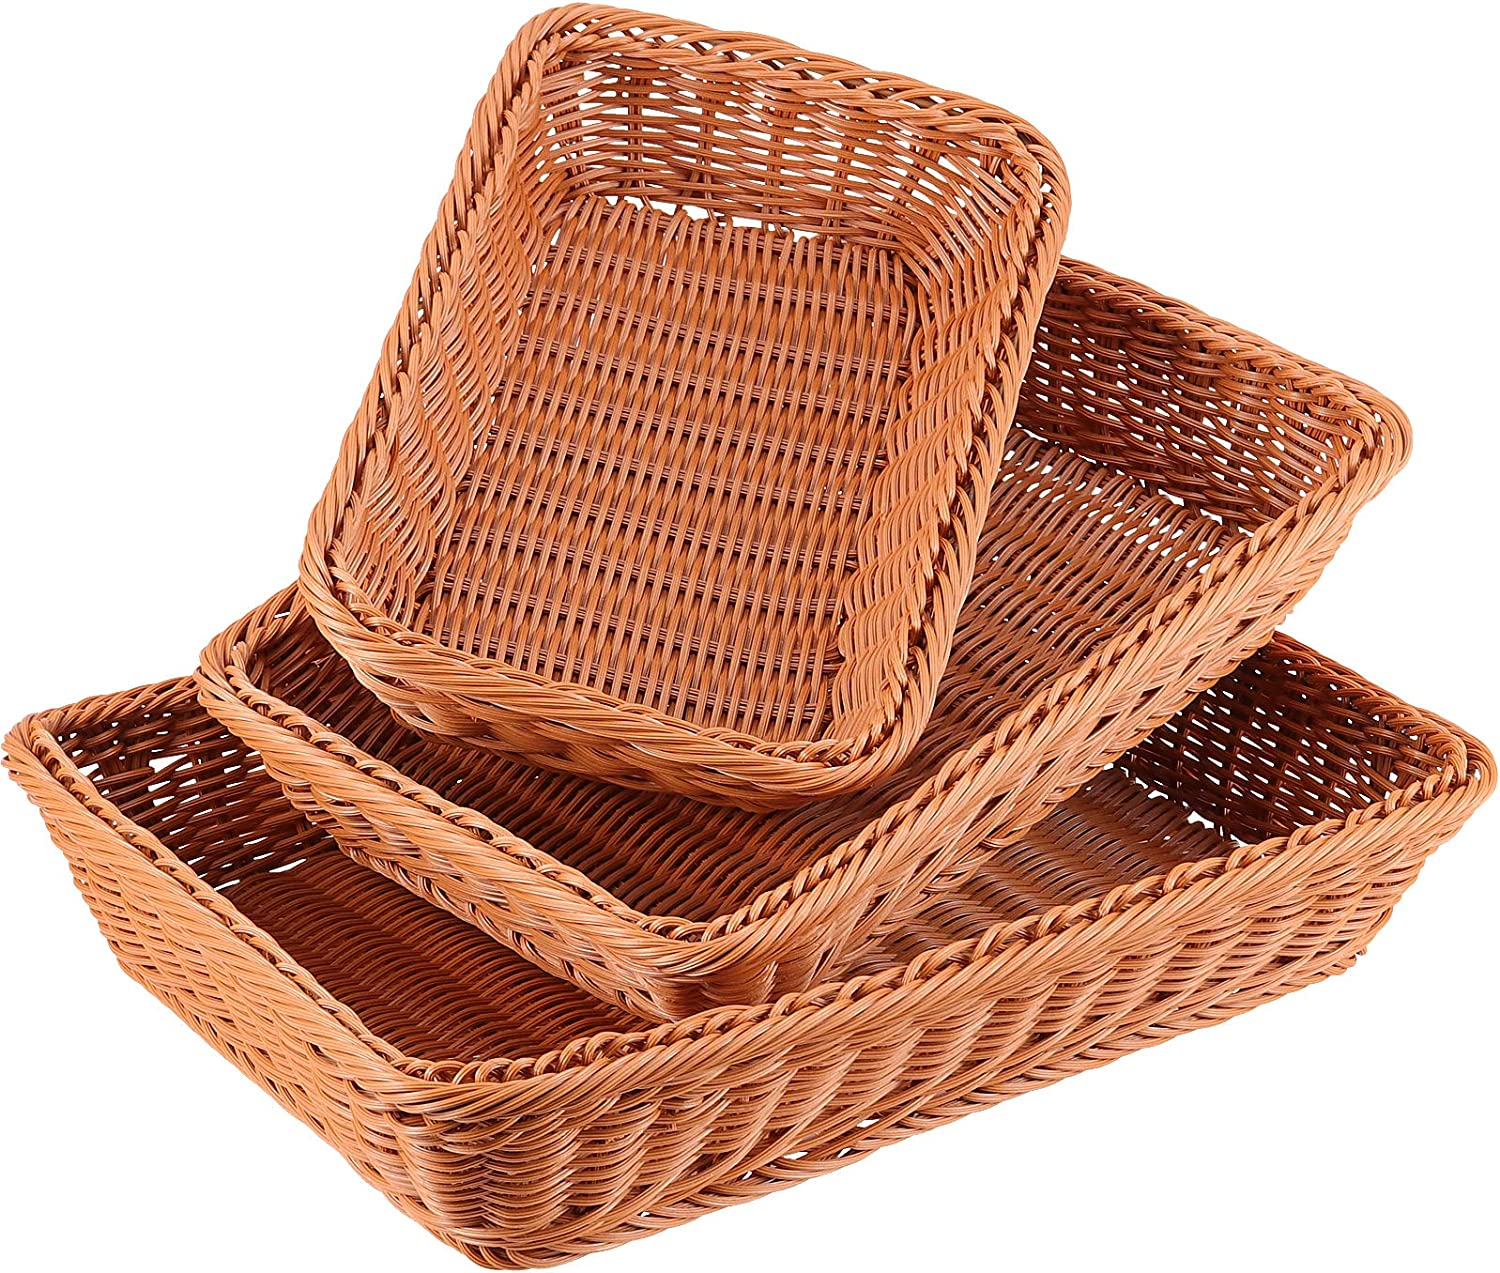 ZEONHAK 3 Pack 12 14 16 Inches Poly Wicker Bread Baskets, Tabletop Food Serving Baskets, Handmade Woven Pantry Organizer for Vegetables, Fruits and Snacks, Restaurant, Hotel Serving